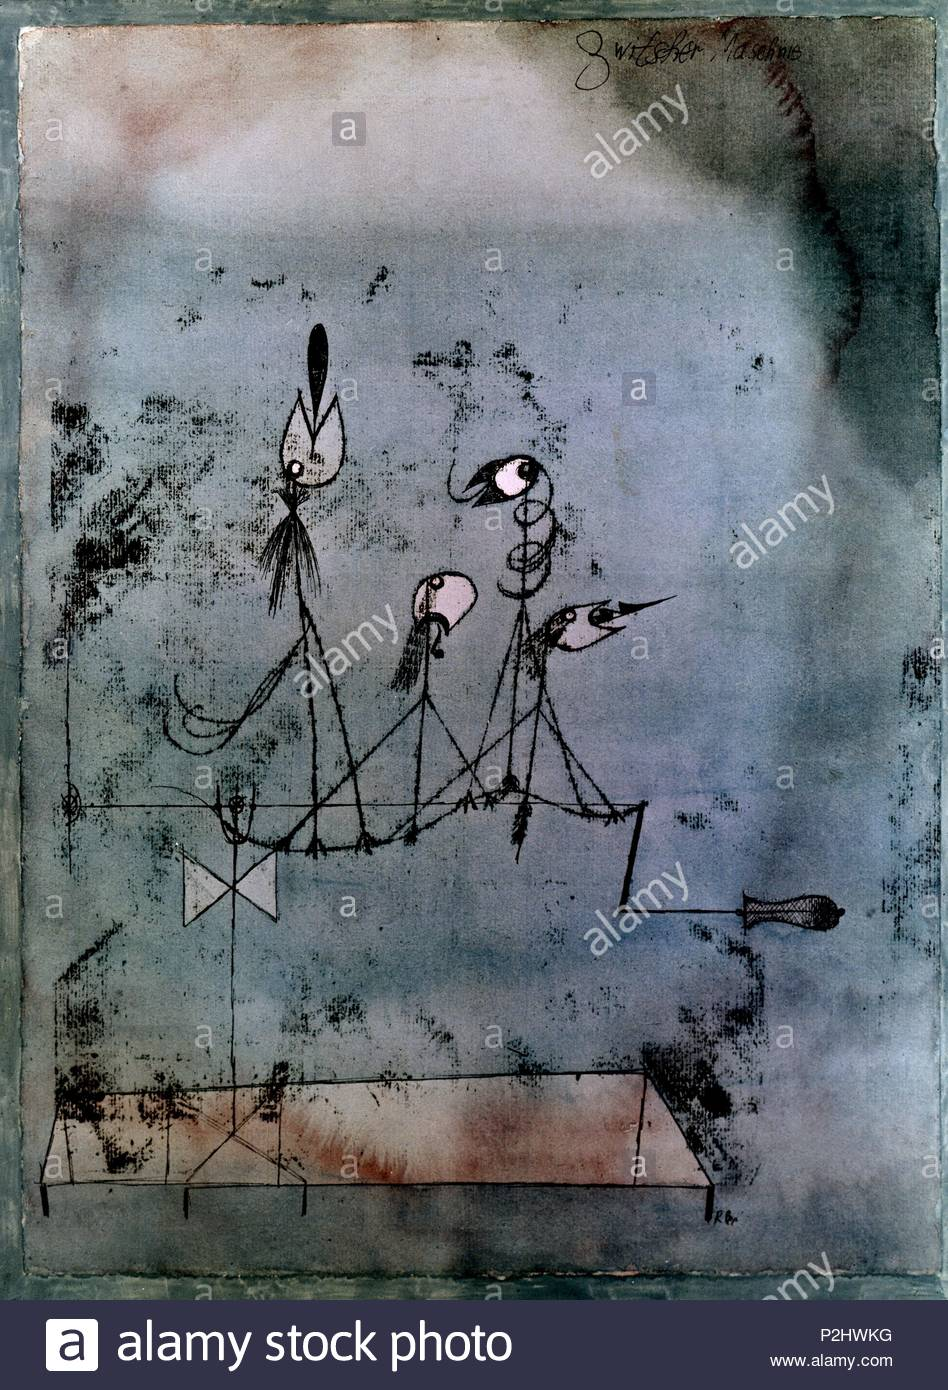 Twittering Machine >> Paul Klee Twittering Machine 1922 63 8 X 48 1 Cm Watercolor